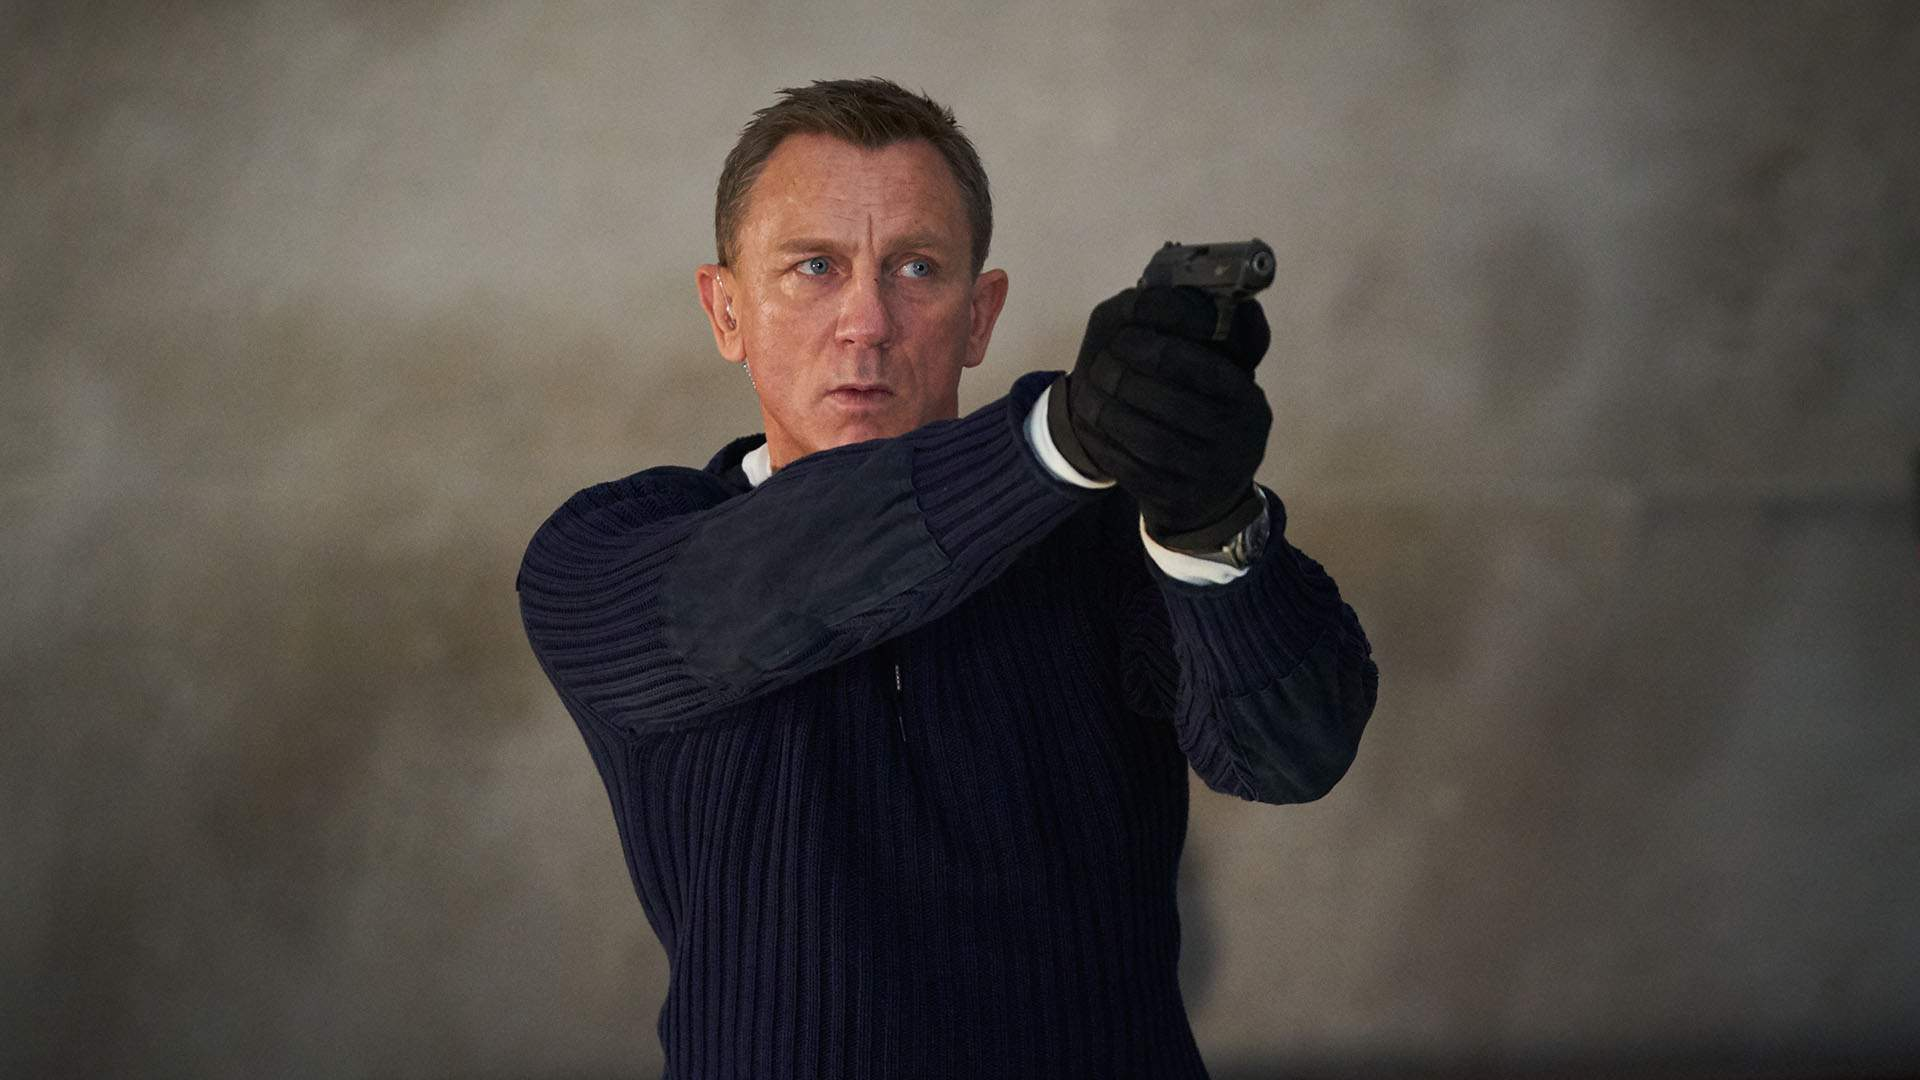 The Release of New Bond Film 'No Time to Die' Has Been Delayed Due to Coronavirus